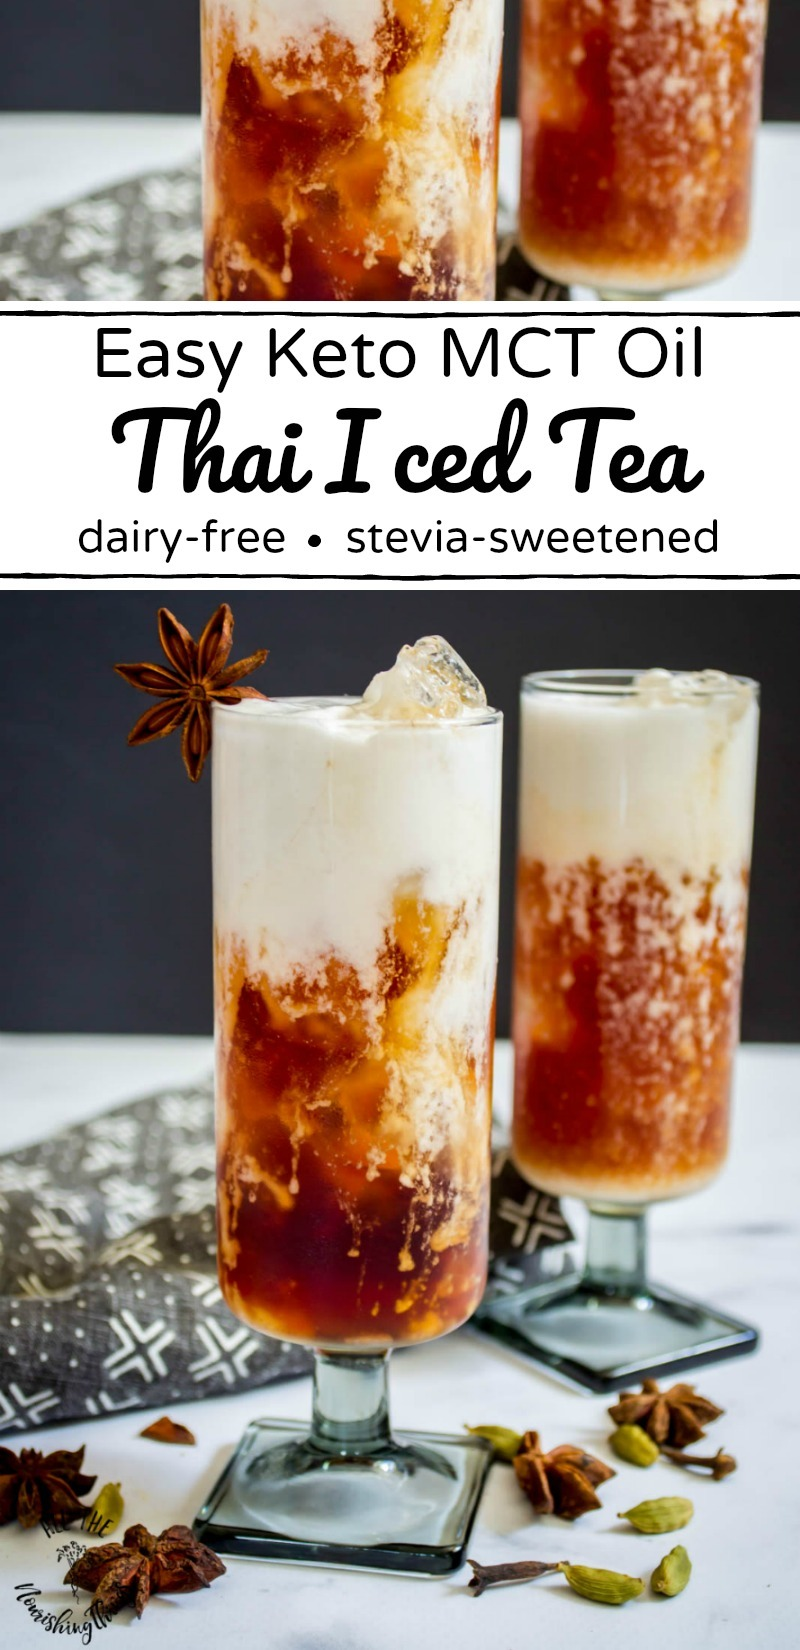 mct oil keto thai iced tea with text overlay